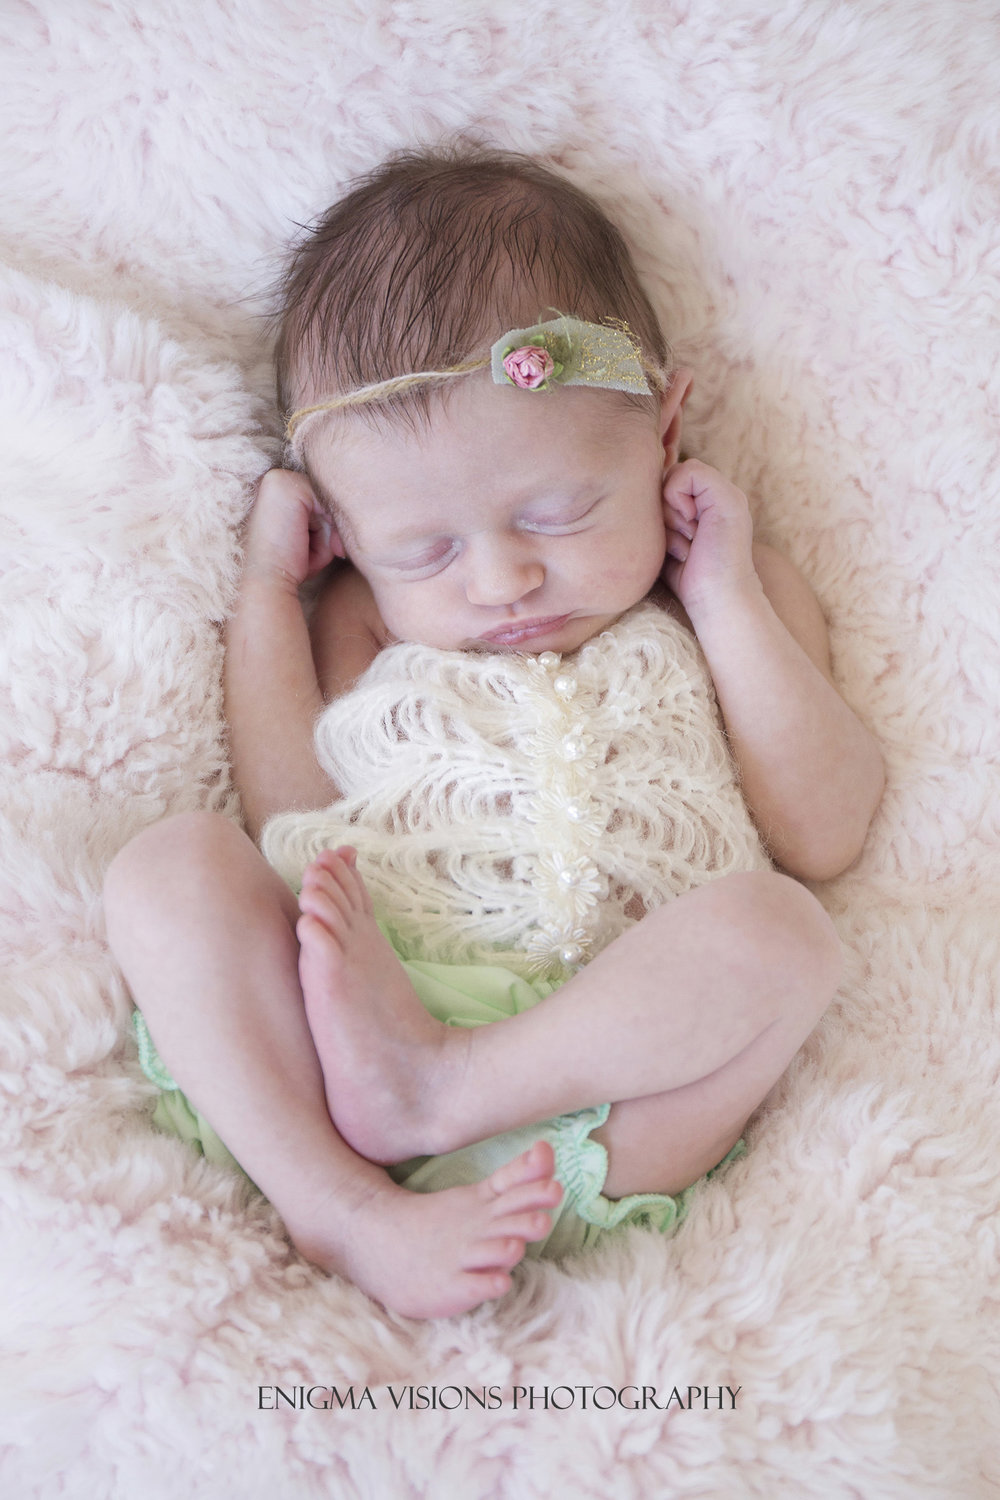 enigma_visions_photography_newborn (14).jpg